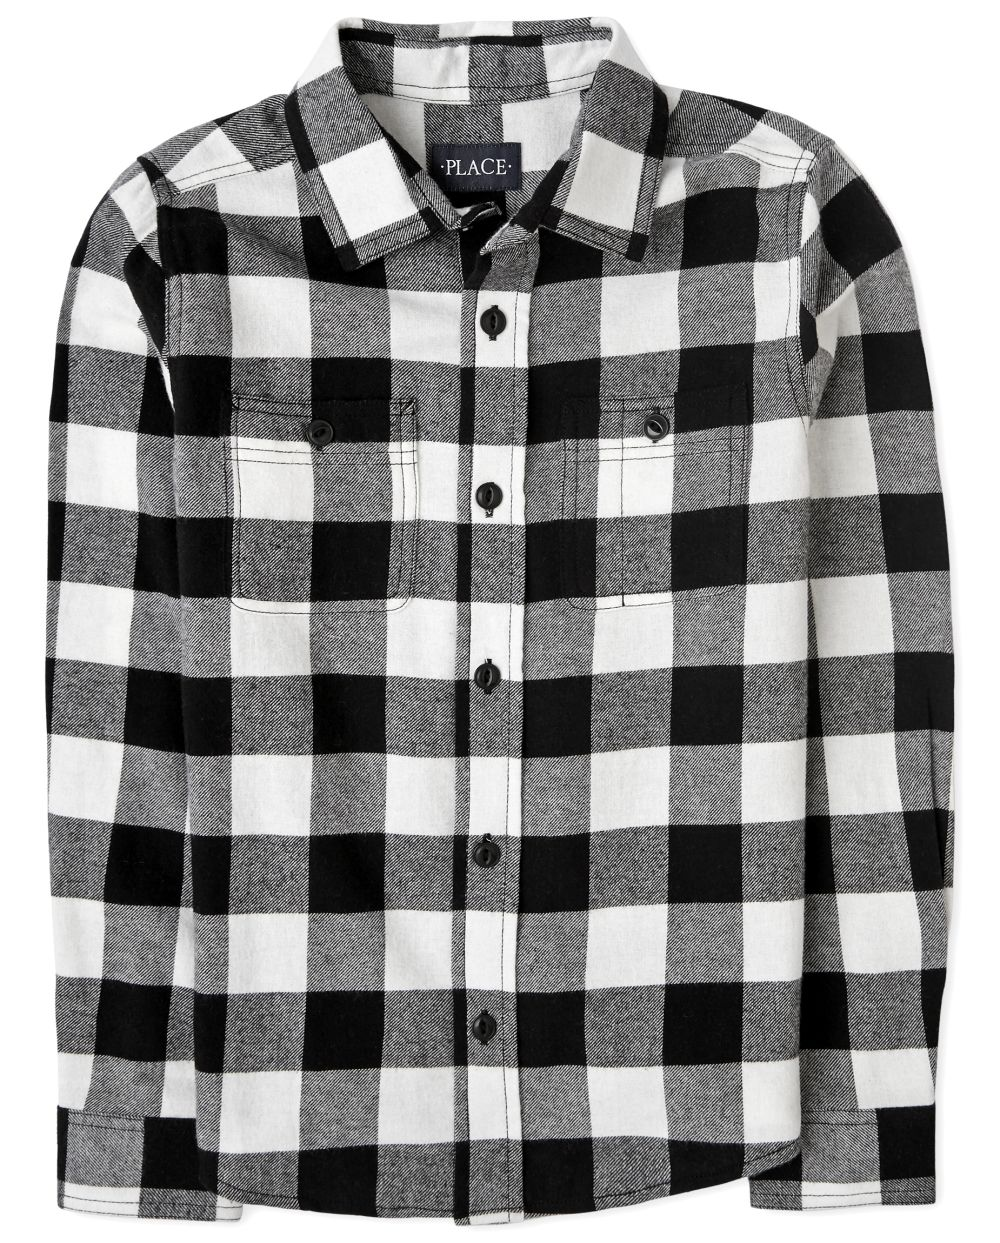 Boys Matching Family Buffalo Plaid Flannel Button Down Shirt